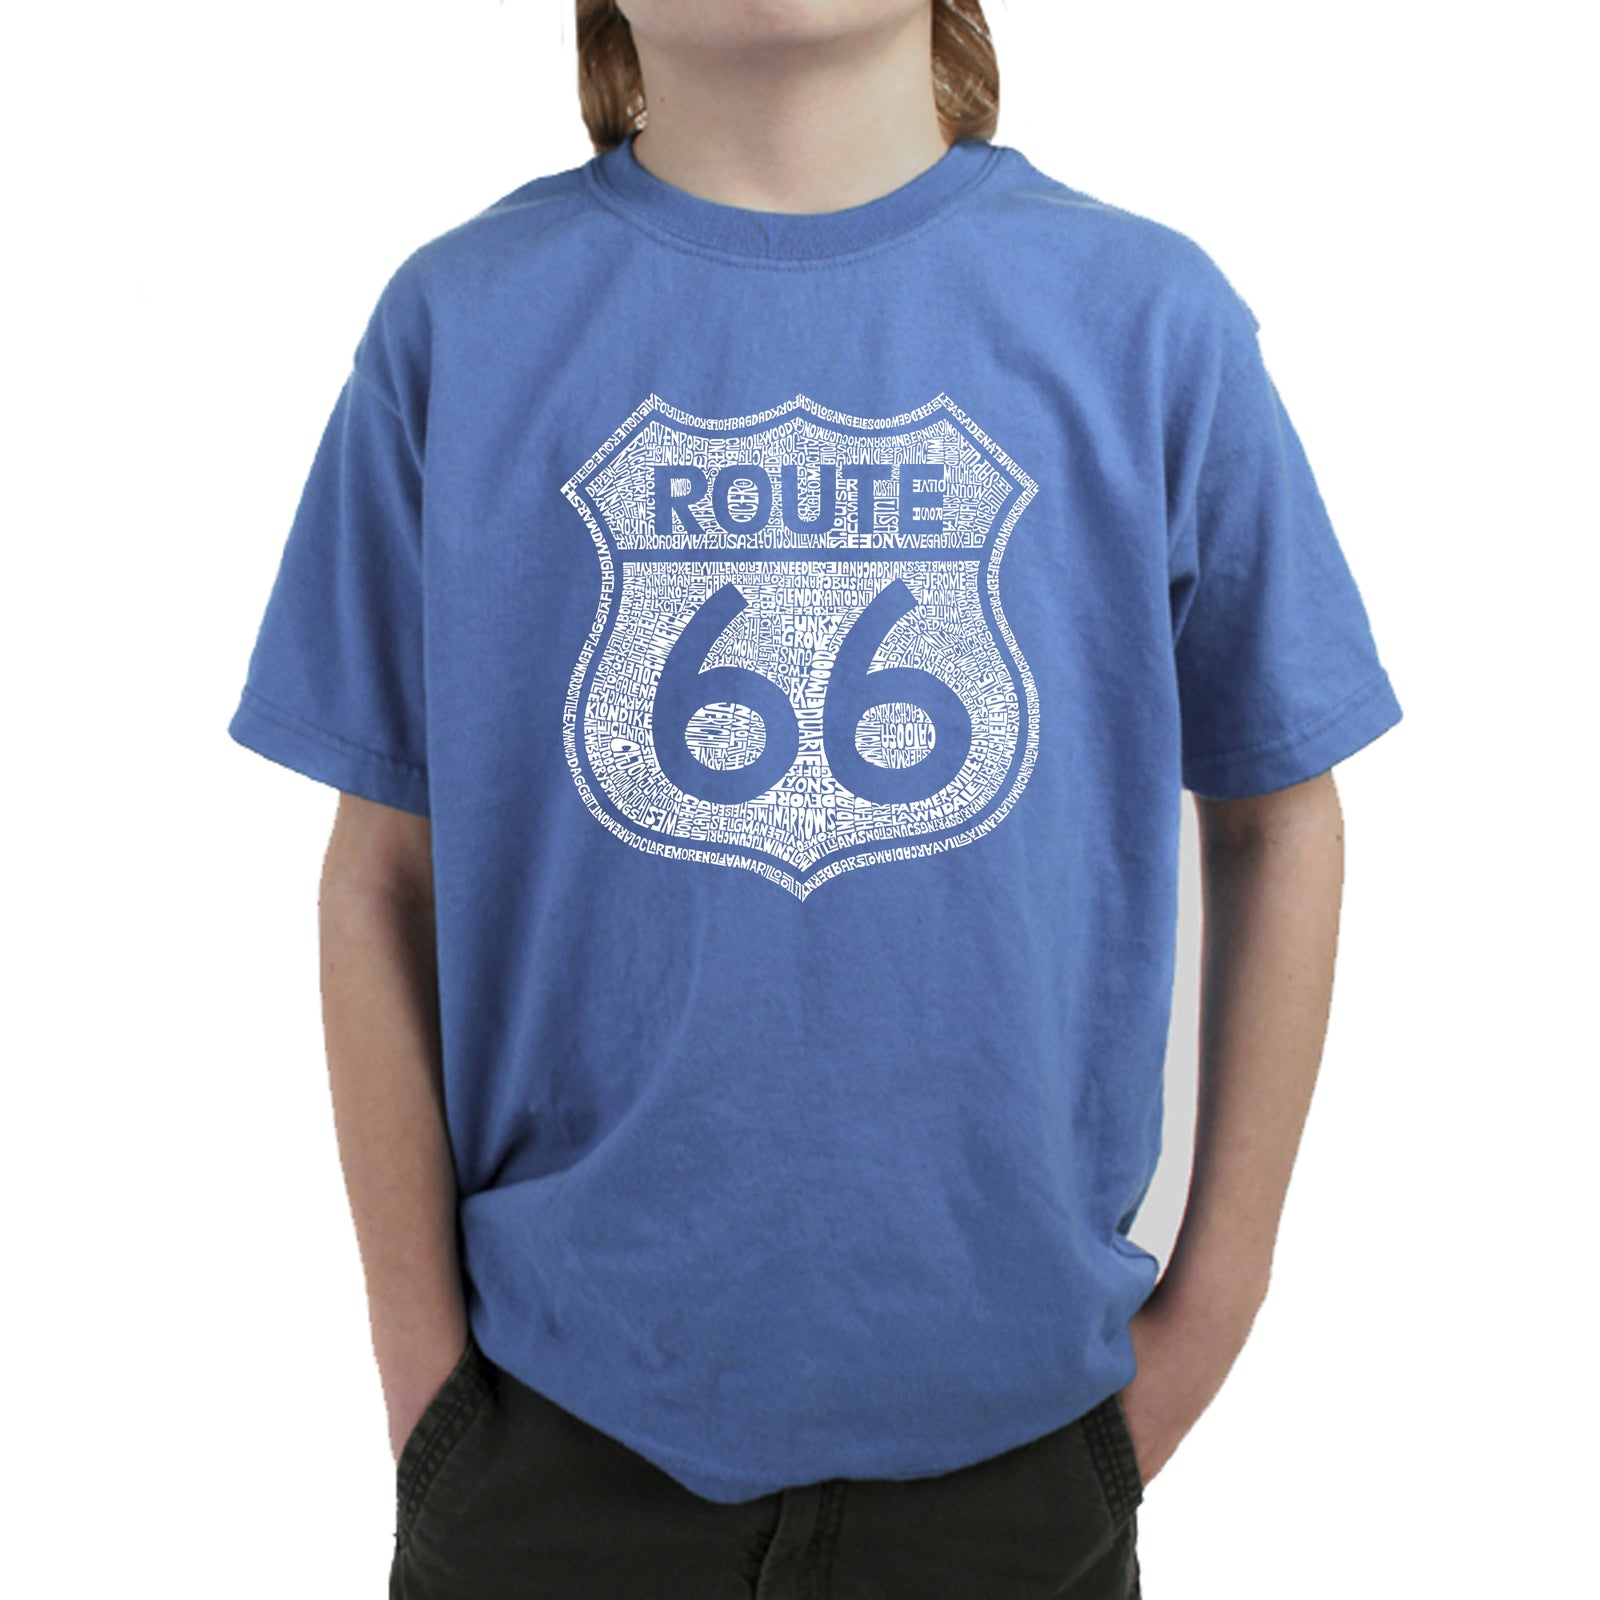 Boy's T-shirt - CITIES ALONG THE LEGENDARY ROUTE 66